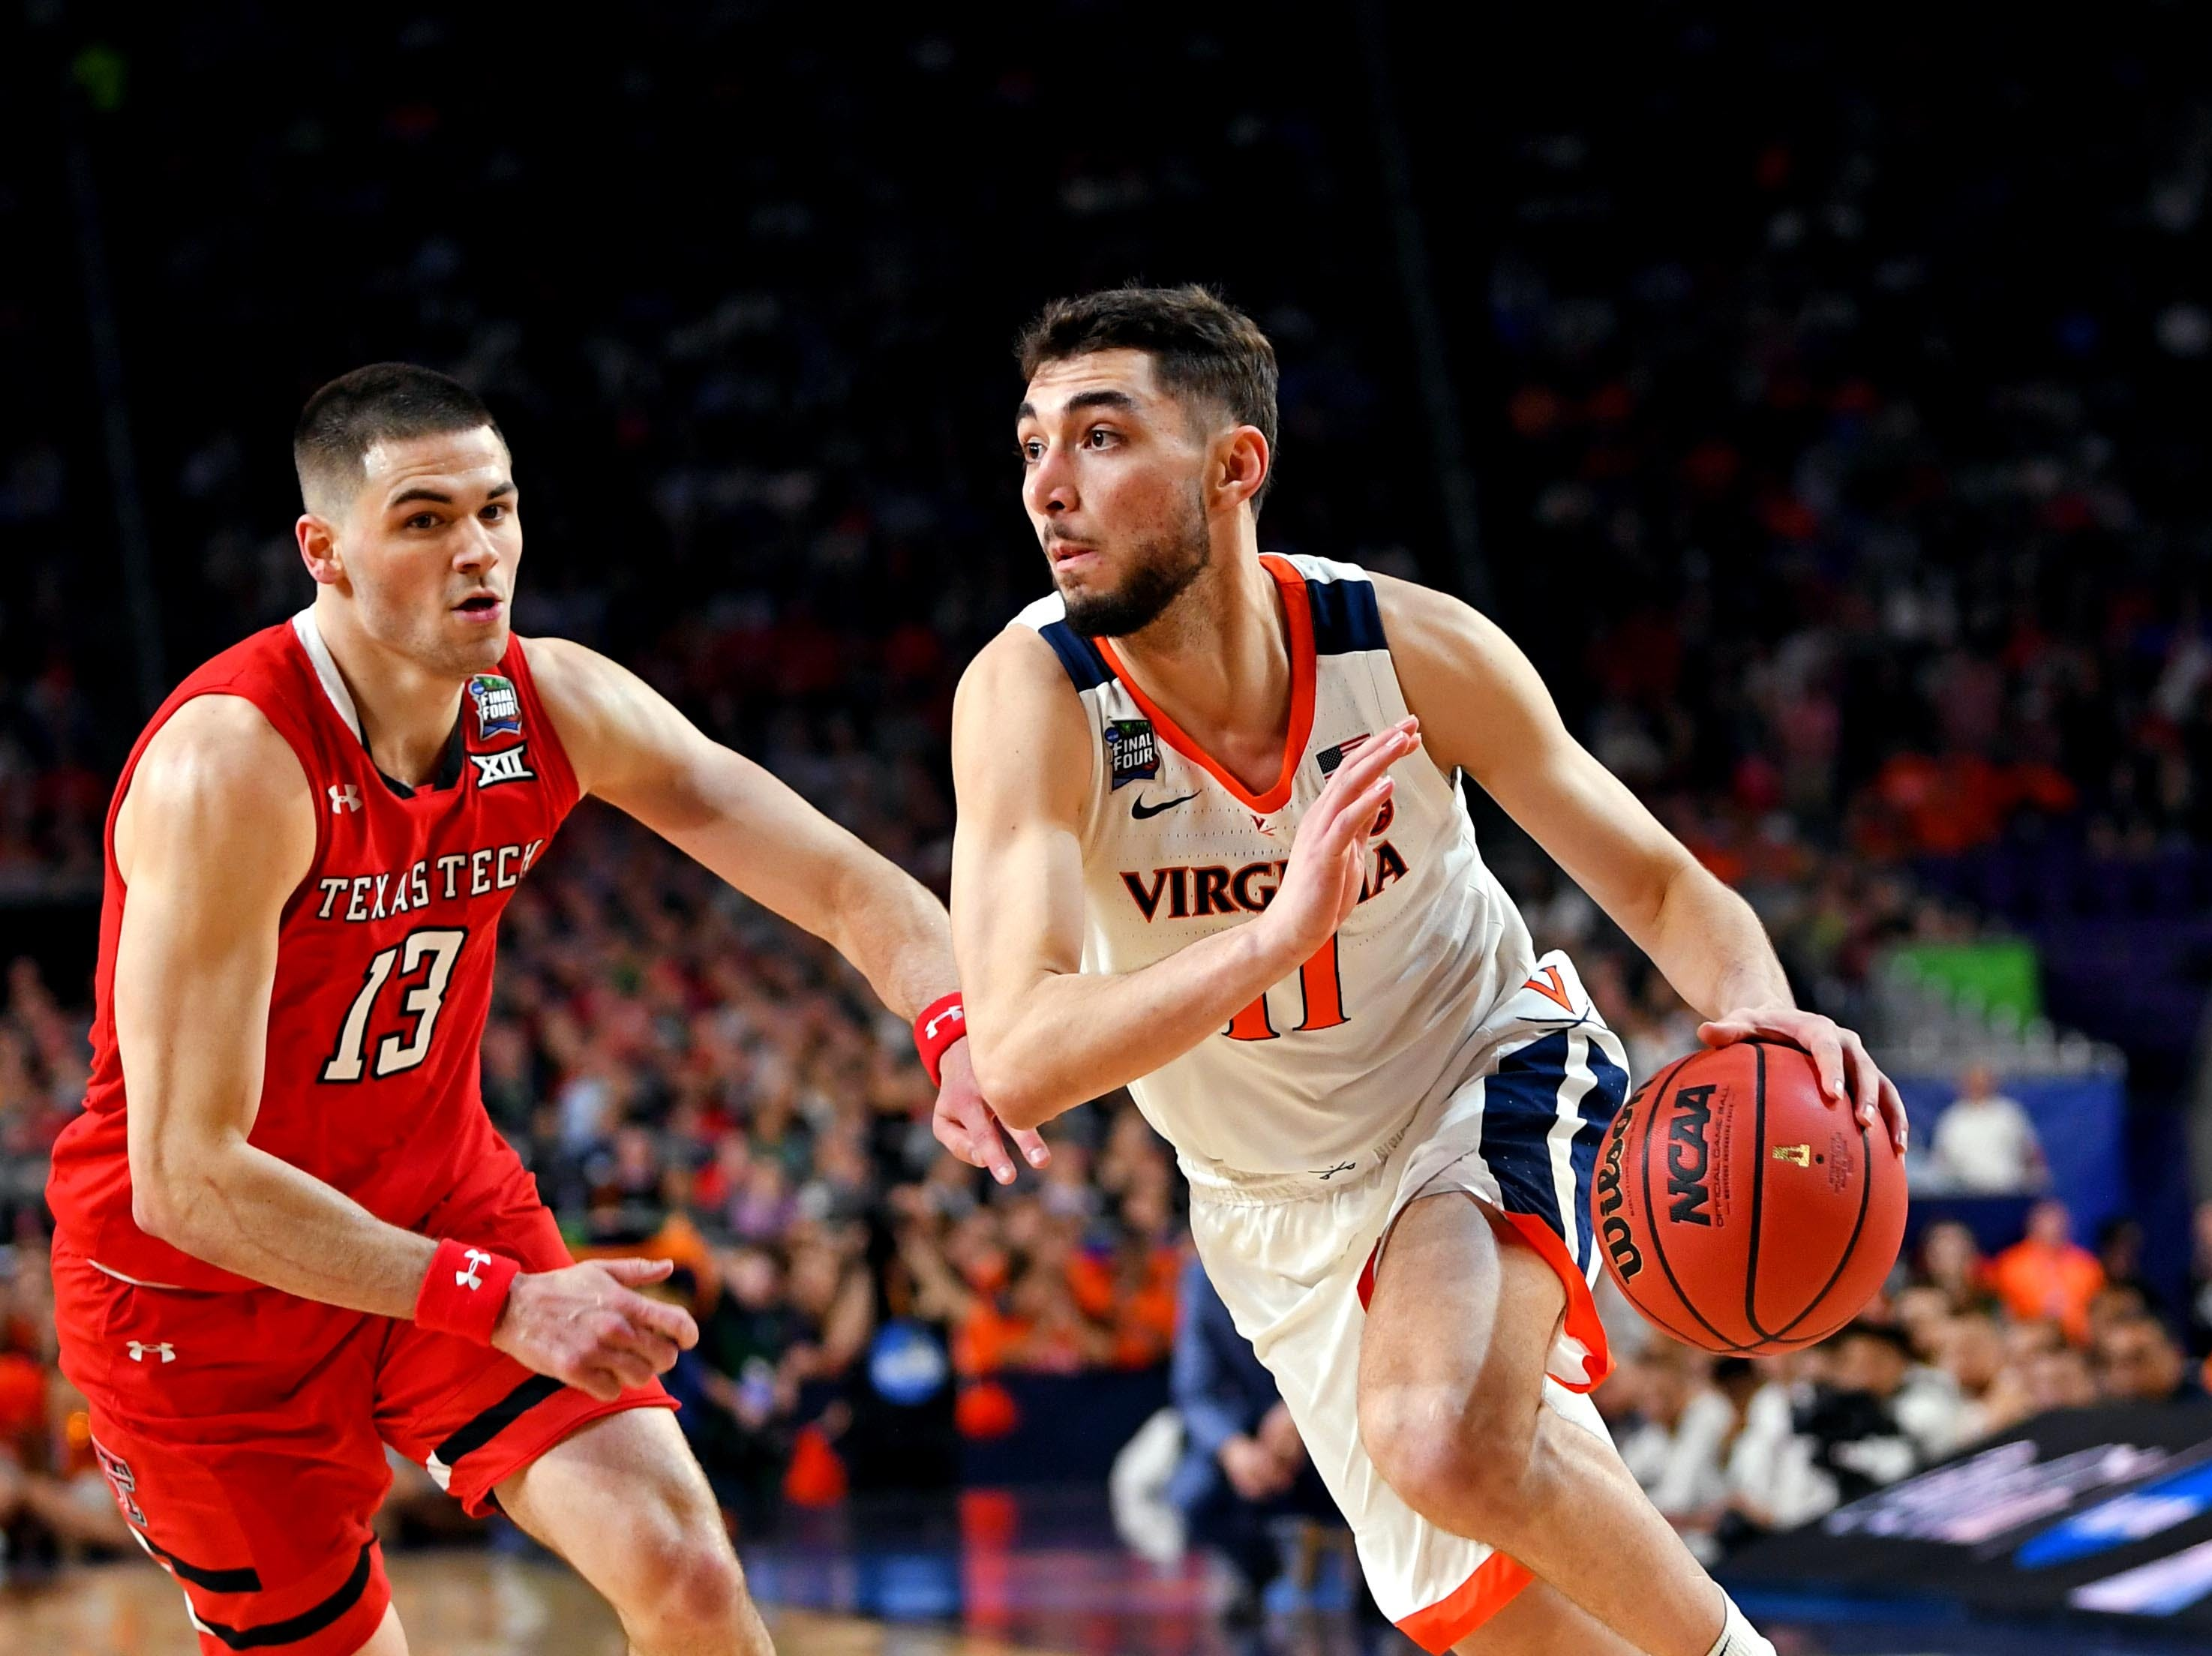 Apr 8, 2019; Minneapolis, MN, USA; Virginia Cavaliers guard Ty Jerome (11) drives to the basket against Texas Tech Red Raiders guard Matt Mooney (13) during the first half in the championship game of the 2019 men's Final Four at US Bank Stadium. Mandatory Credit: Bob Donnan-USA TODAY Sports